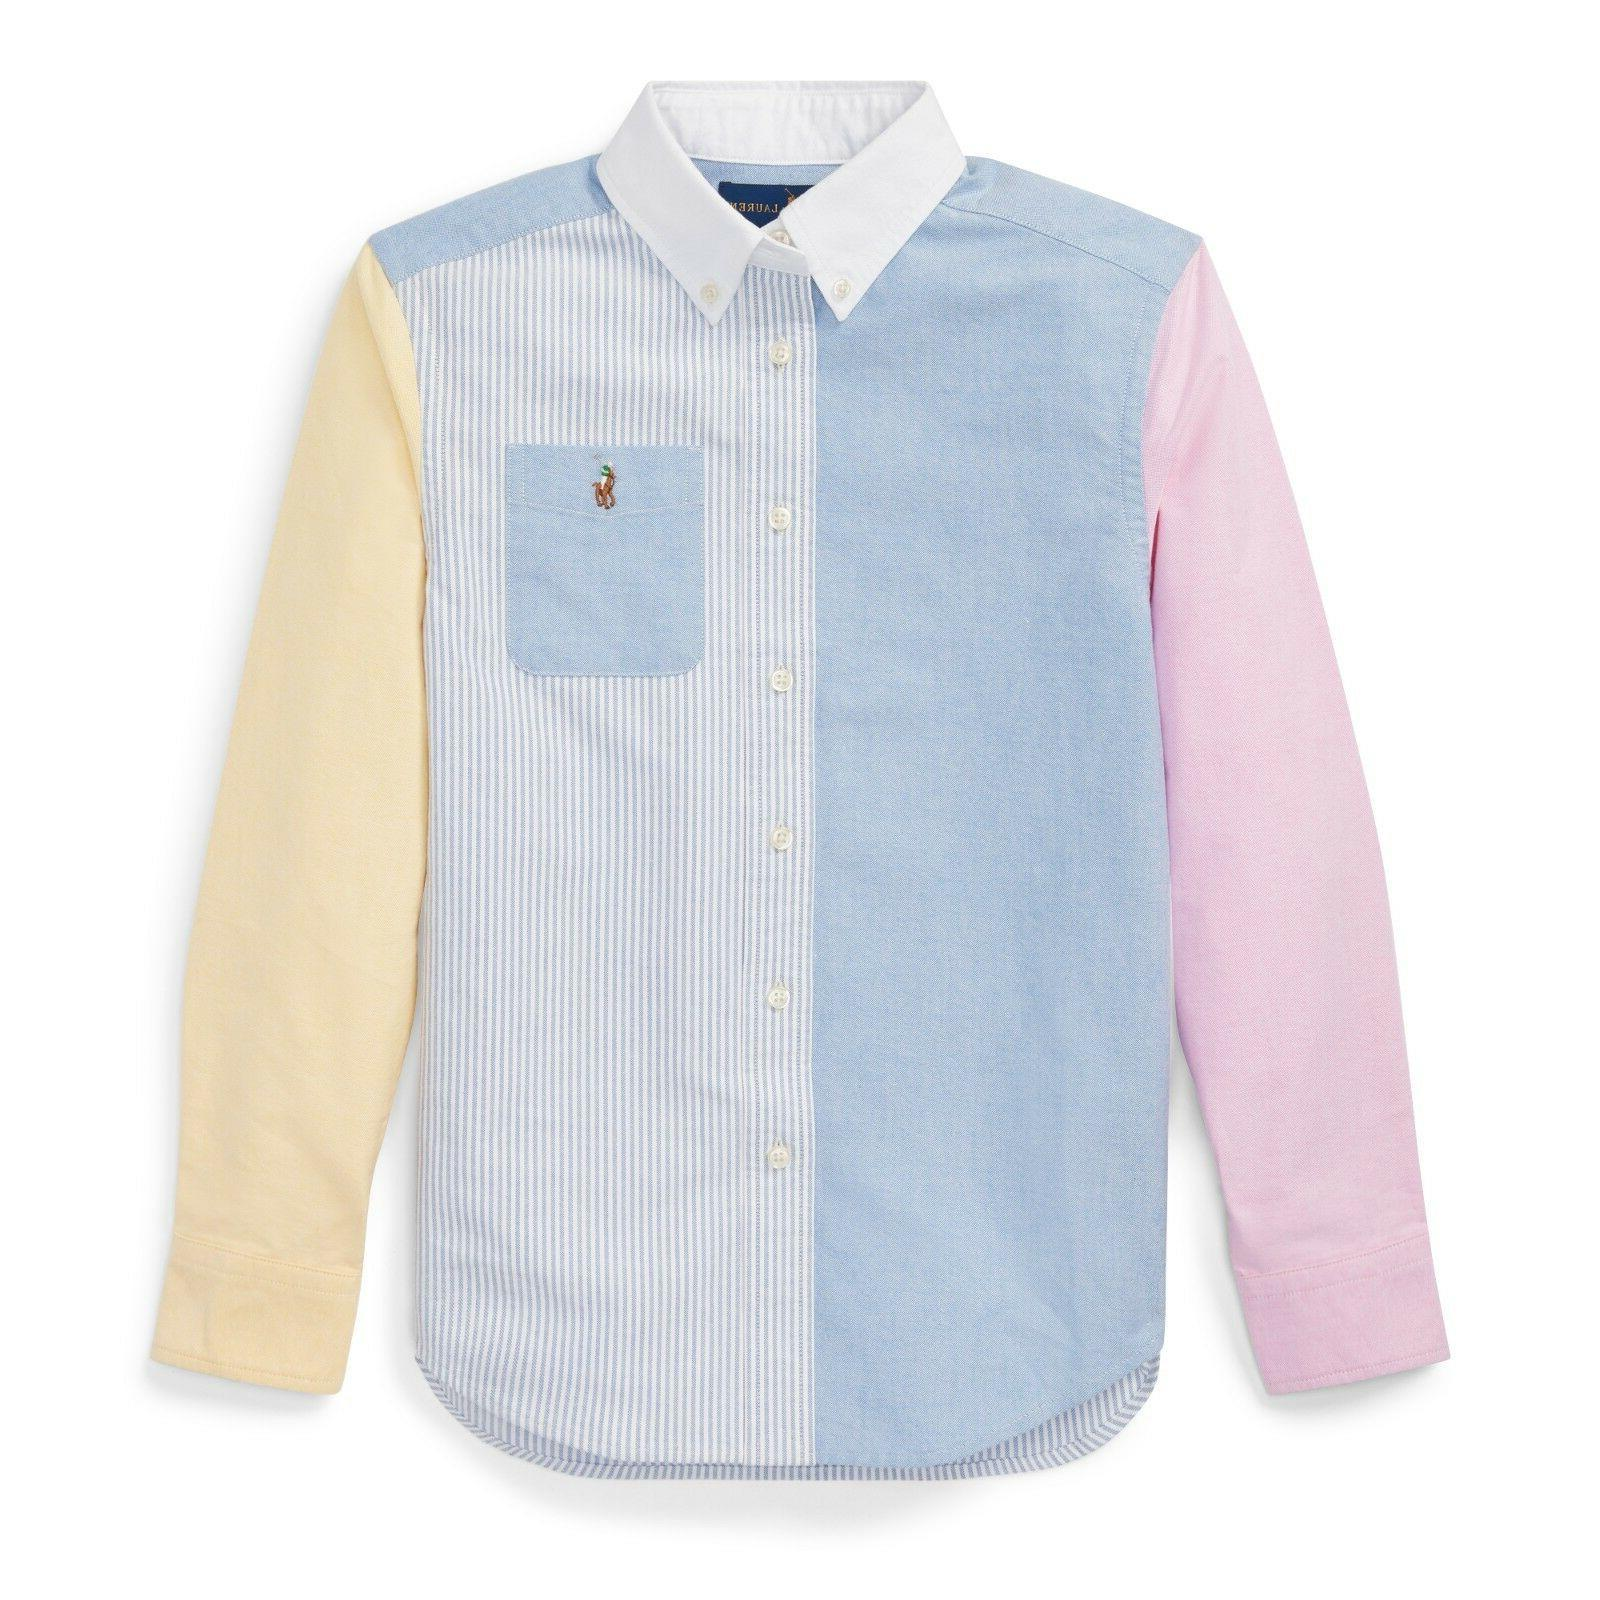 ralph lauren button down multicolored dress shirt